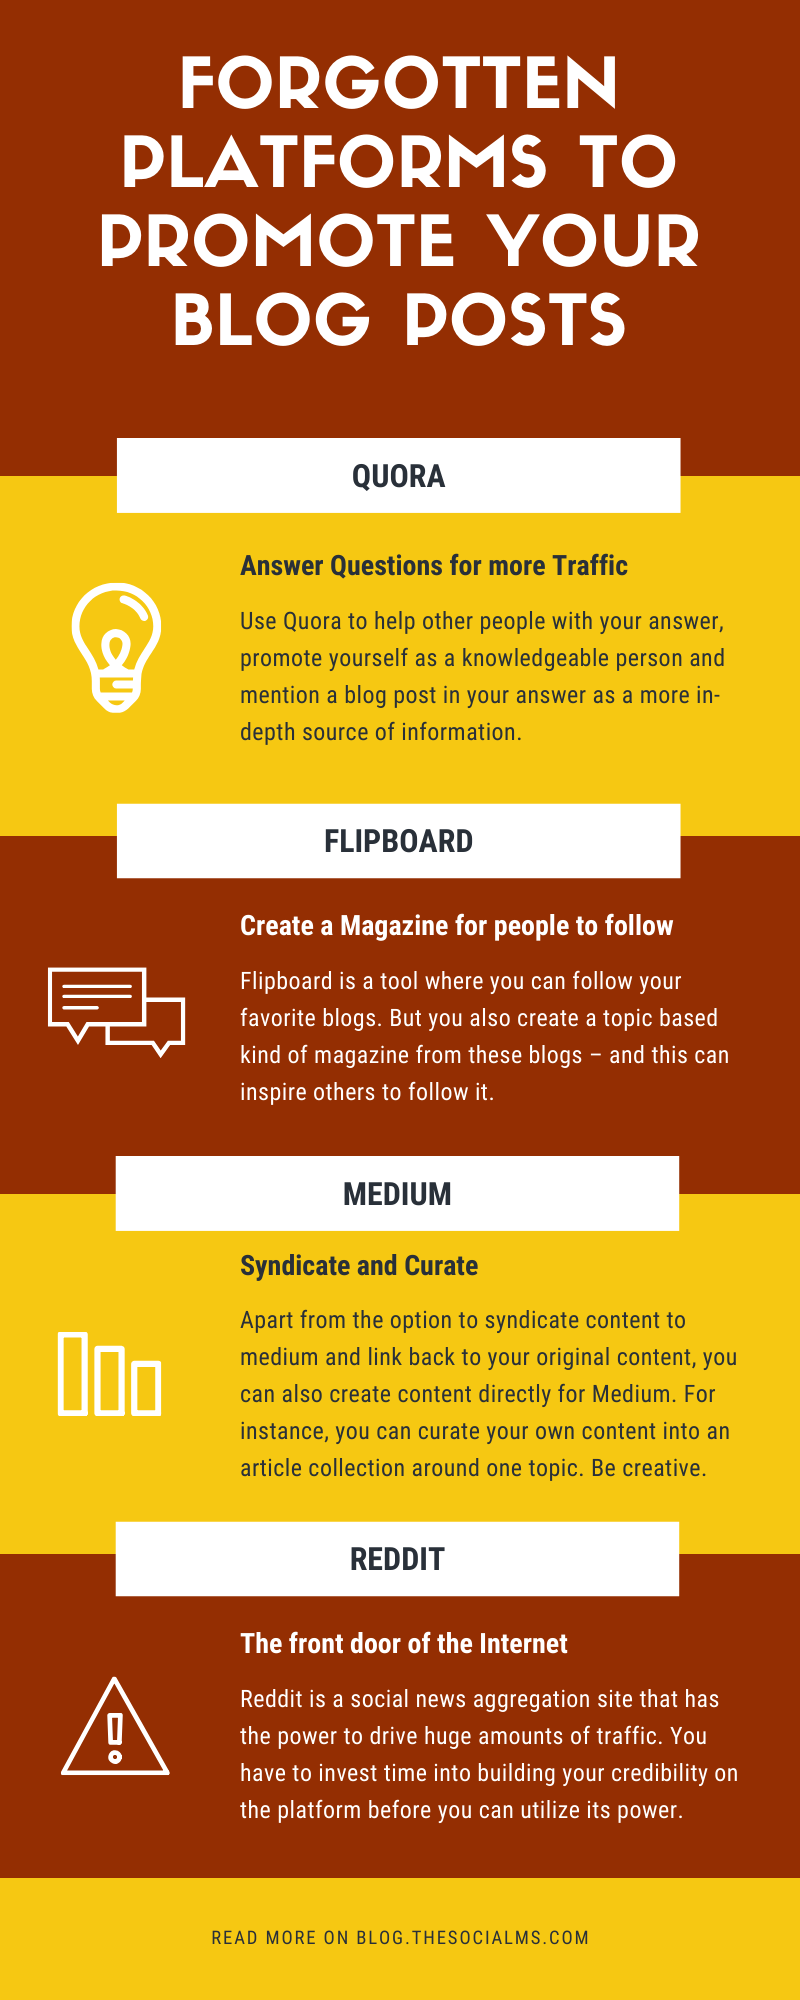 there are a lot more platforms that can work wonders for your blog promotion and traffic and help you find some new readers.  Here are platforms you should consider for your blog promotion. #blogpromotion #blogtraffic #trafficgeneration #webtraffic #blogging101 #bloggingforbeginners #startablog